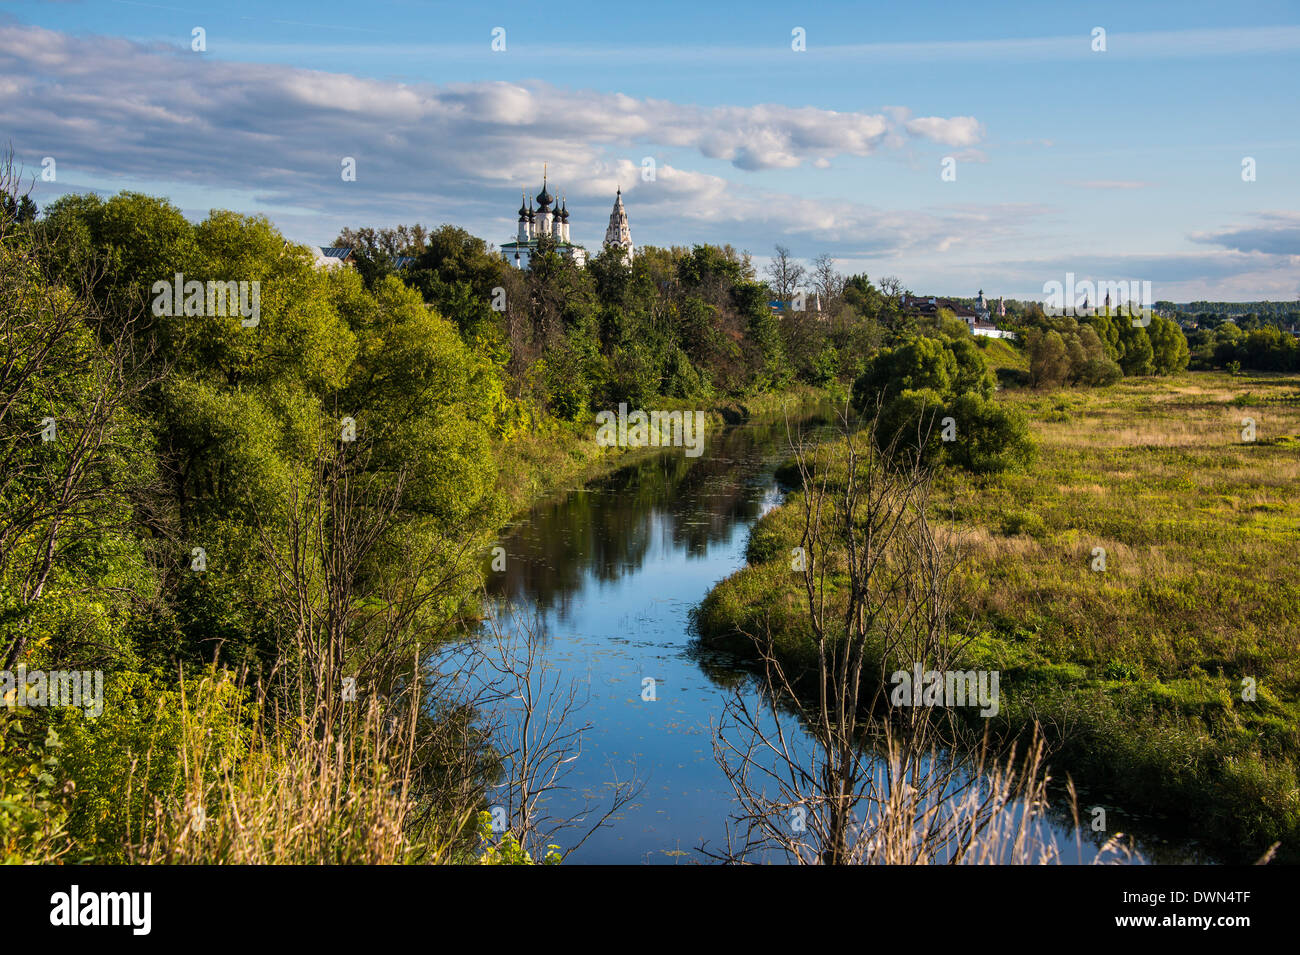 The Kamenka River flowing through Suzdal, Golden Ring, Russia, Europe - Stock Image